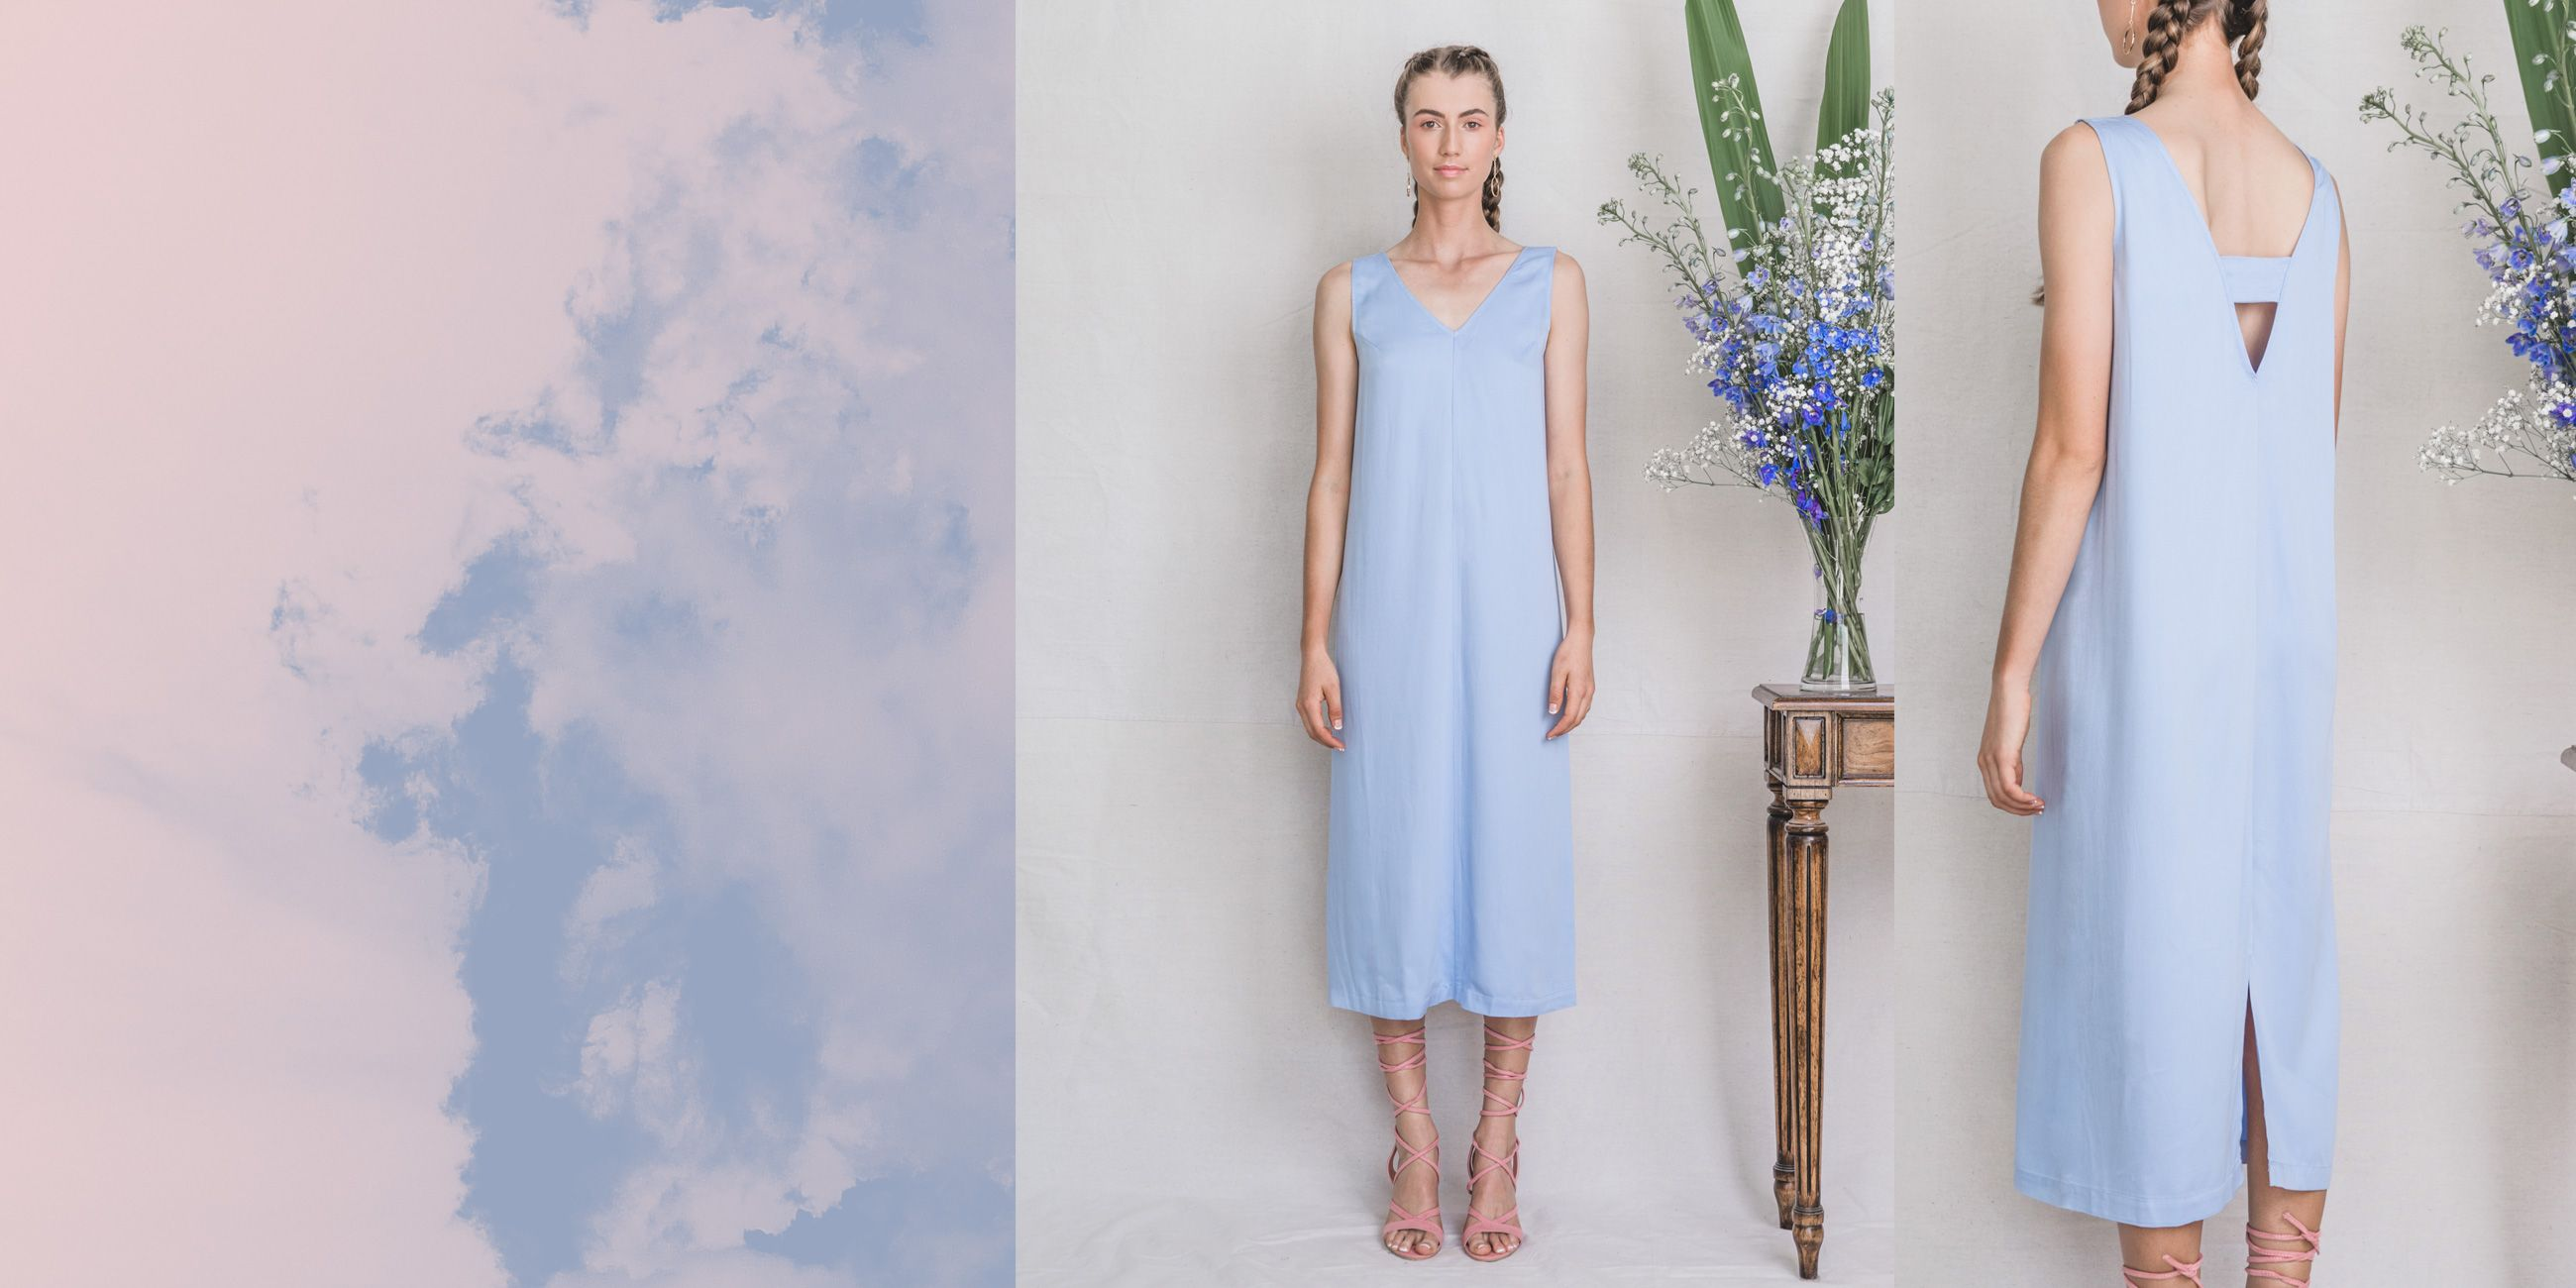 Hydrus Bamboo Dress Serenity Blue – The Great Beyond 3